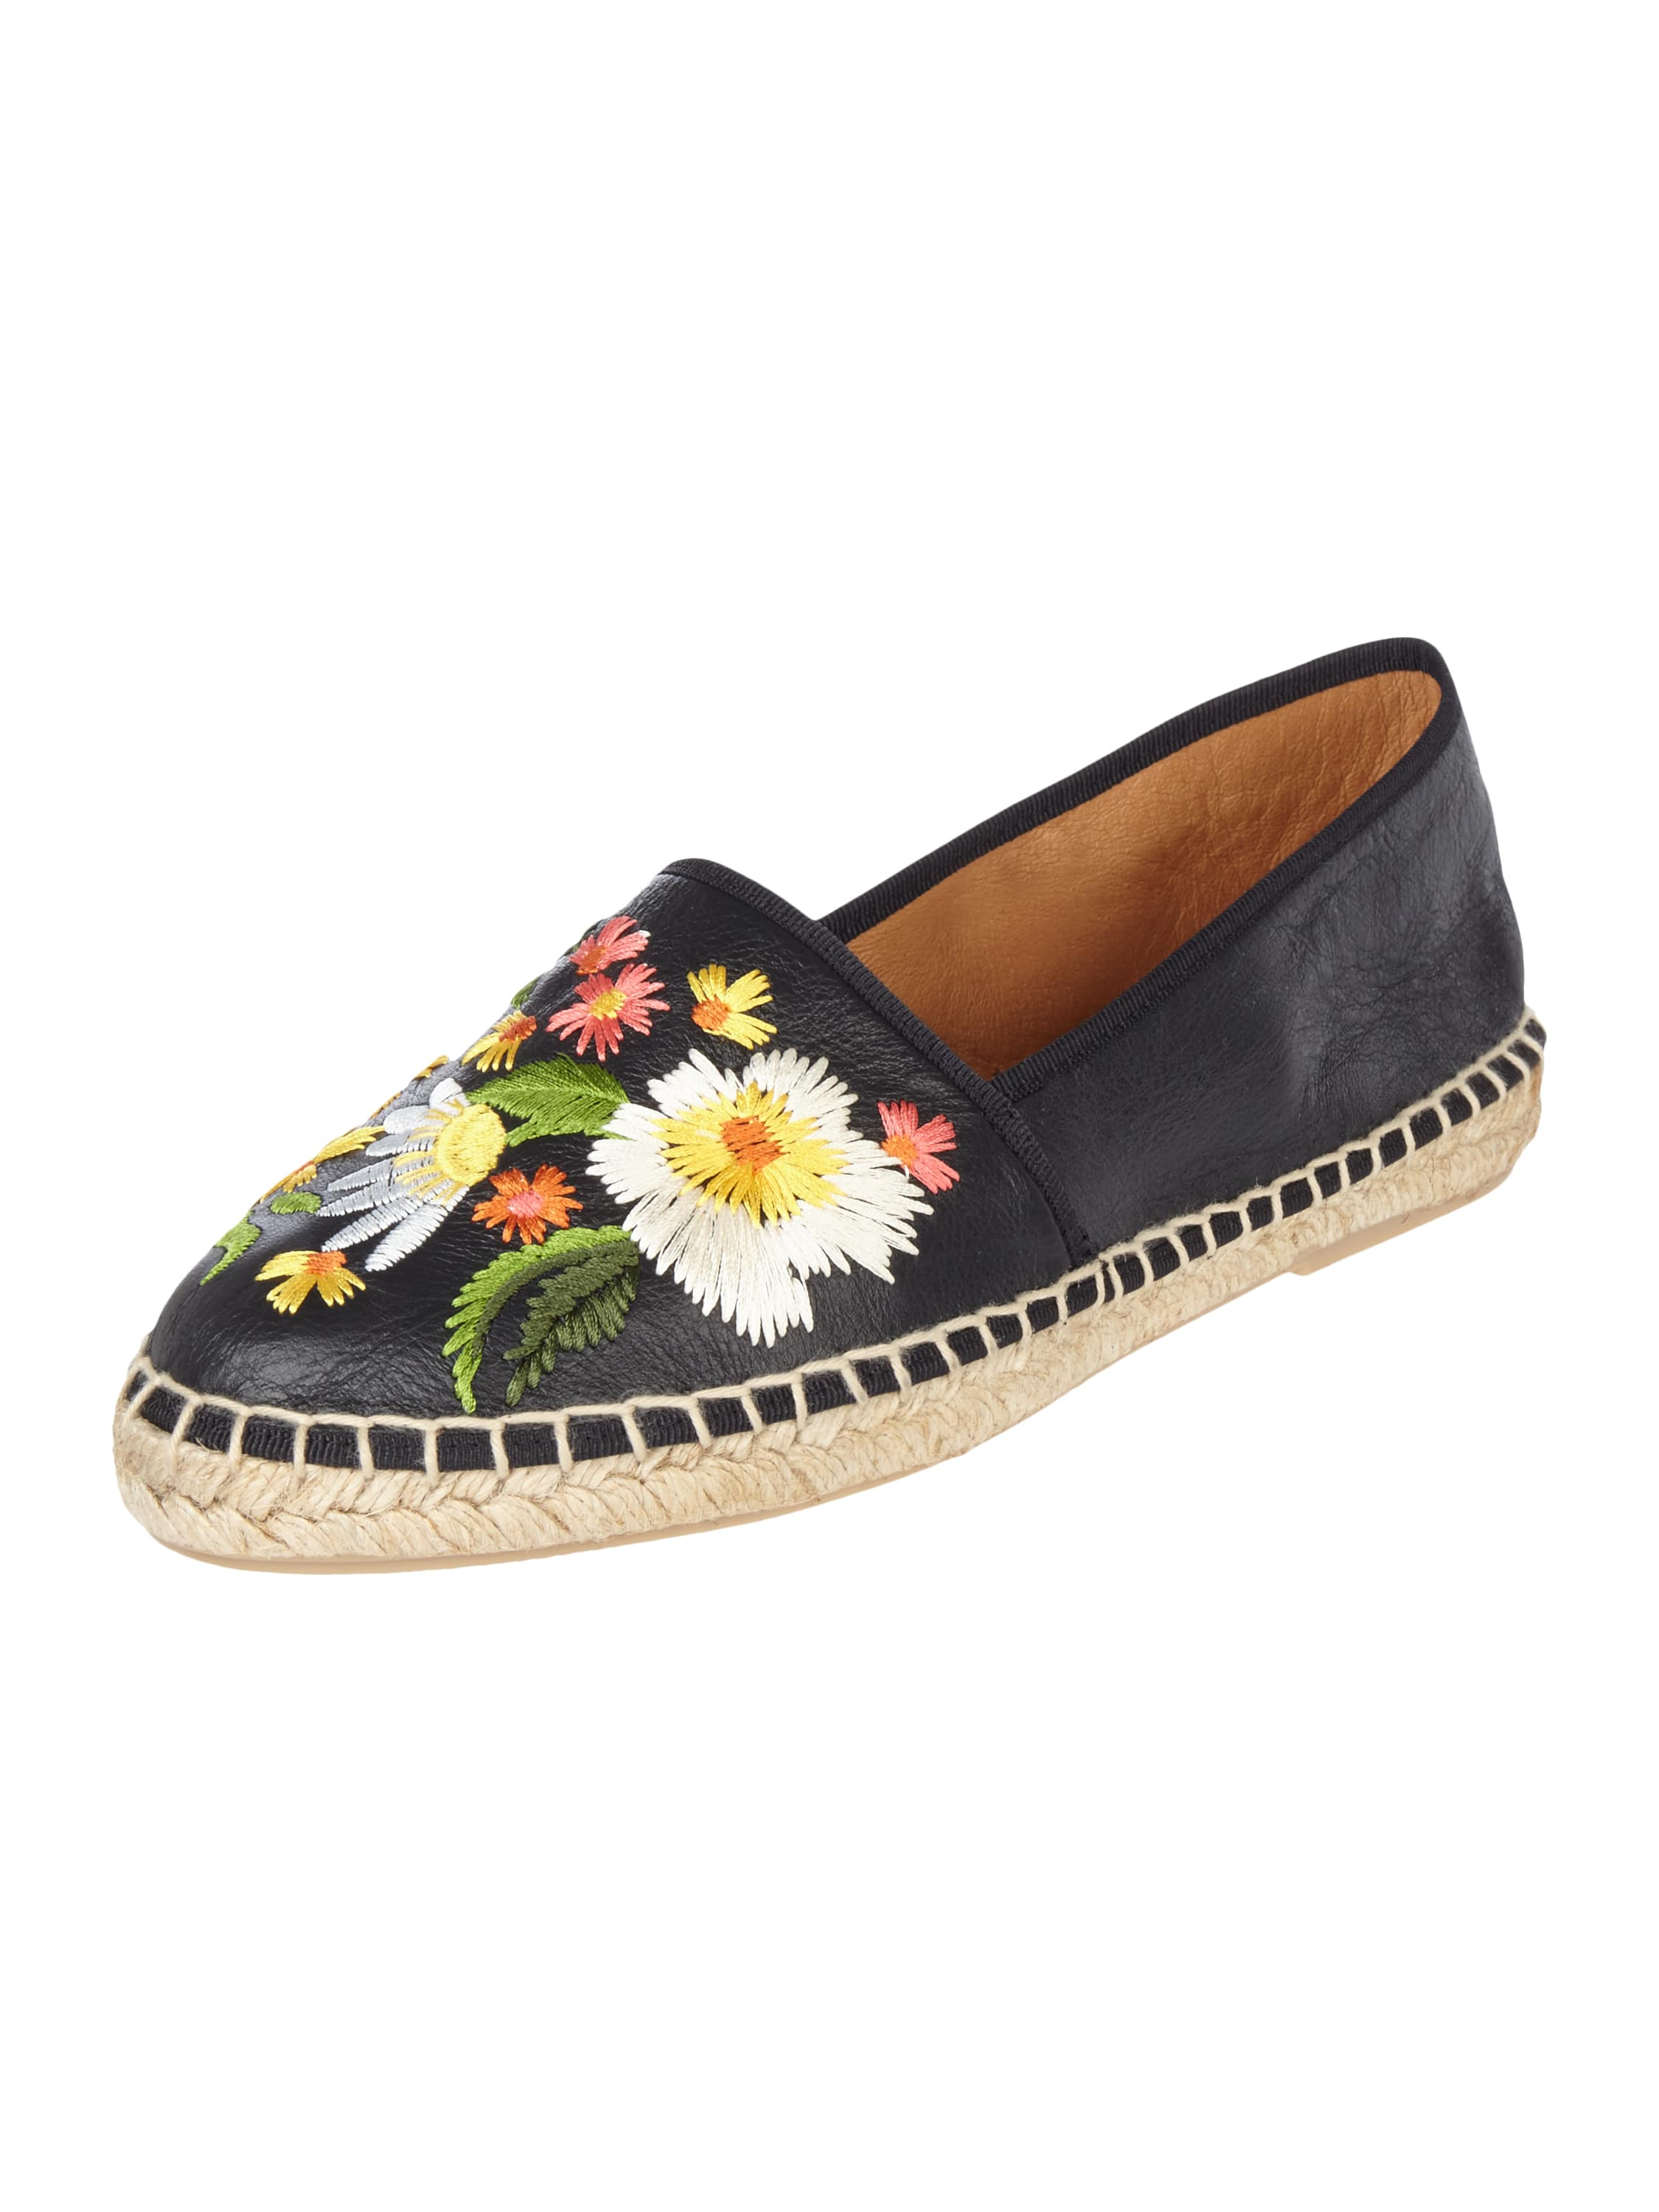 maypol espadrilles aus leder mit floralen stickereien in. Black Bedroom Furniture Sets. Home Design Ideas